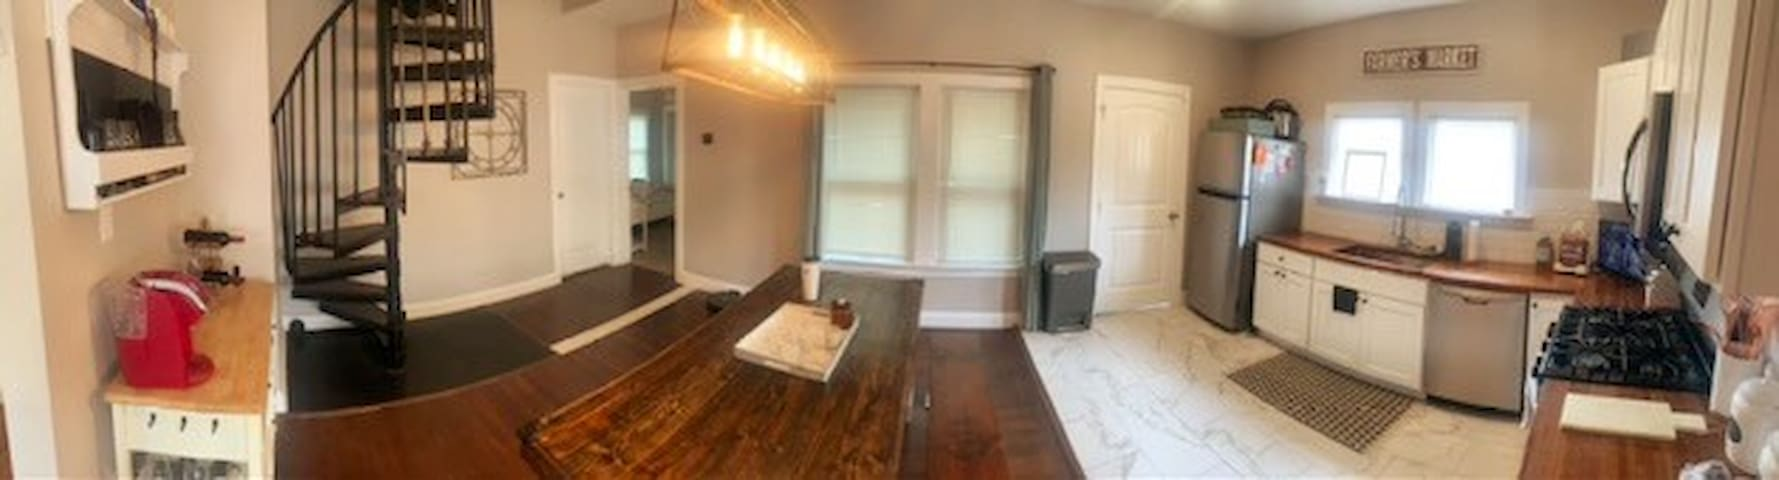 Private Room in Newly Renovated Home